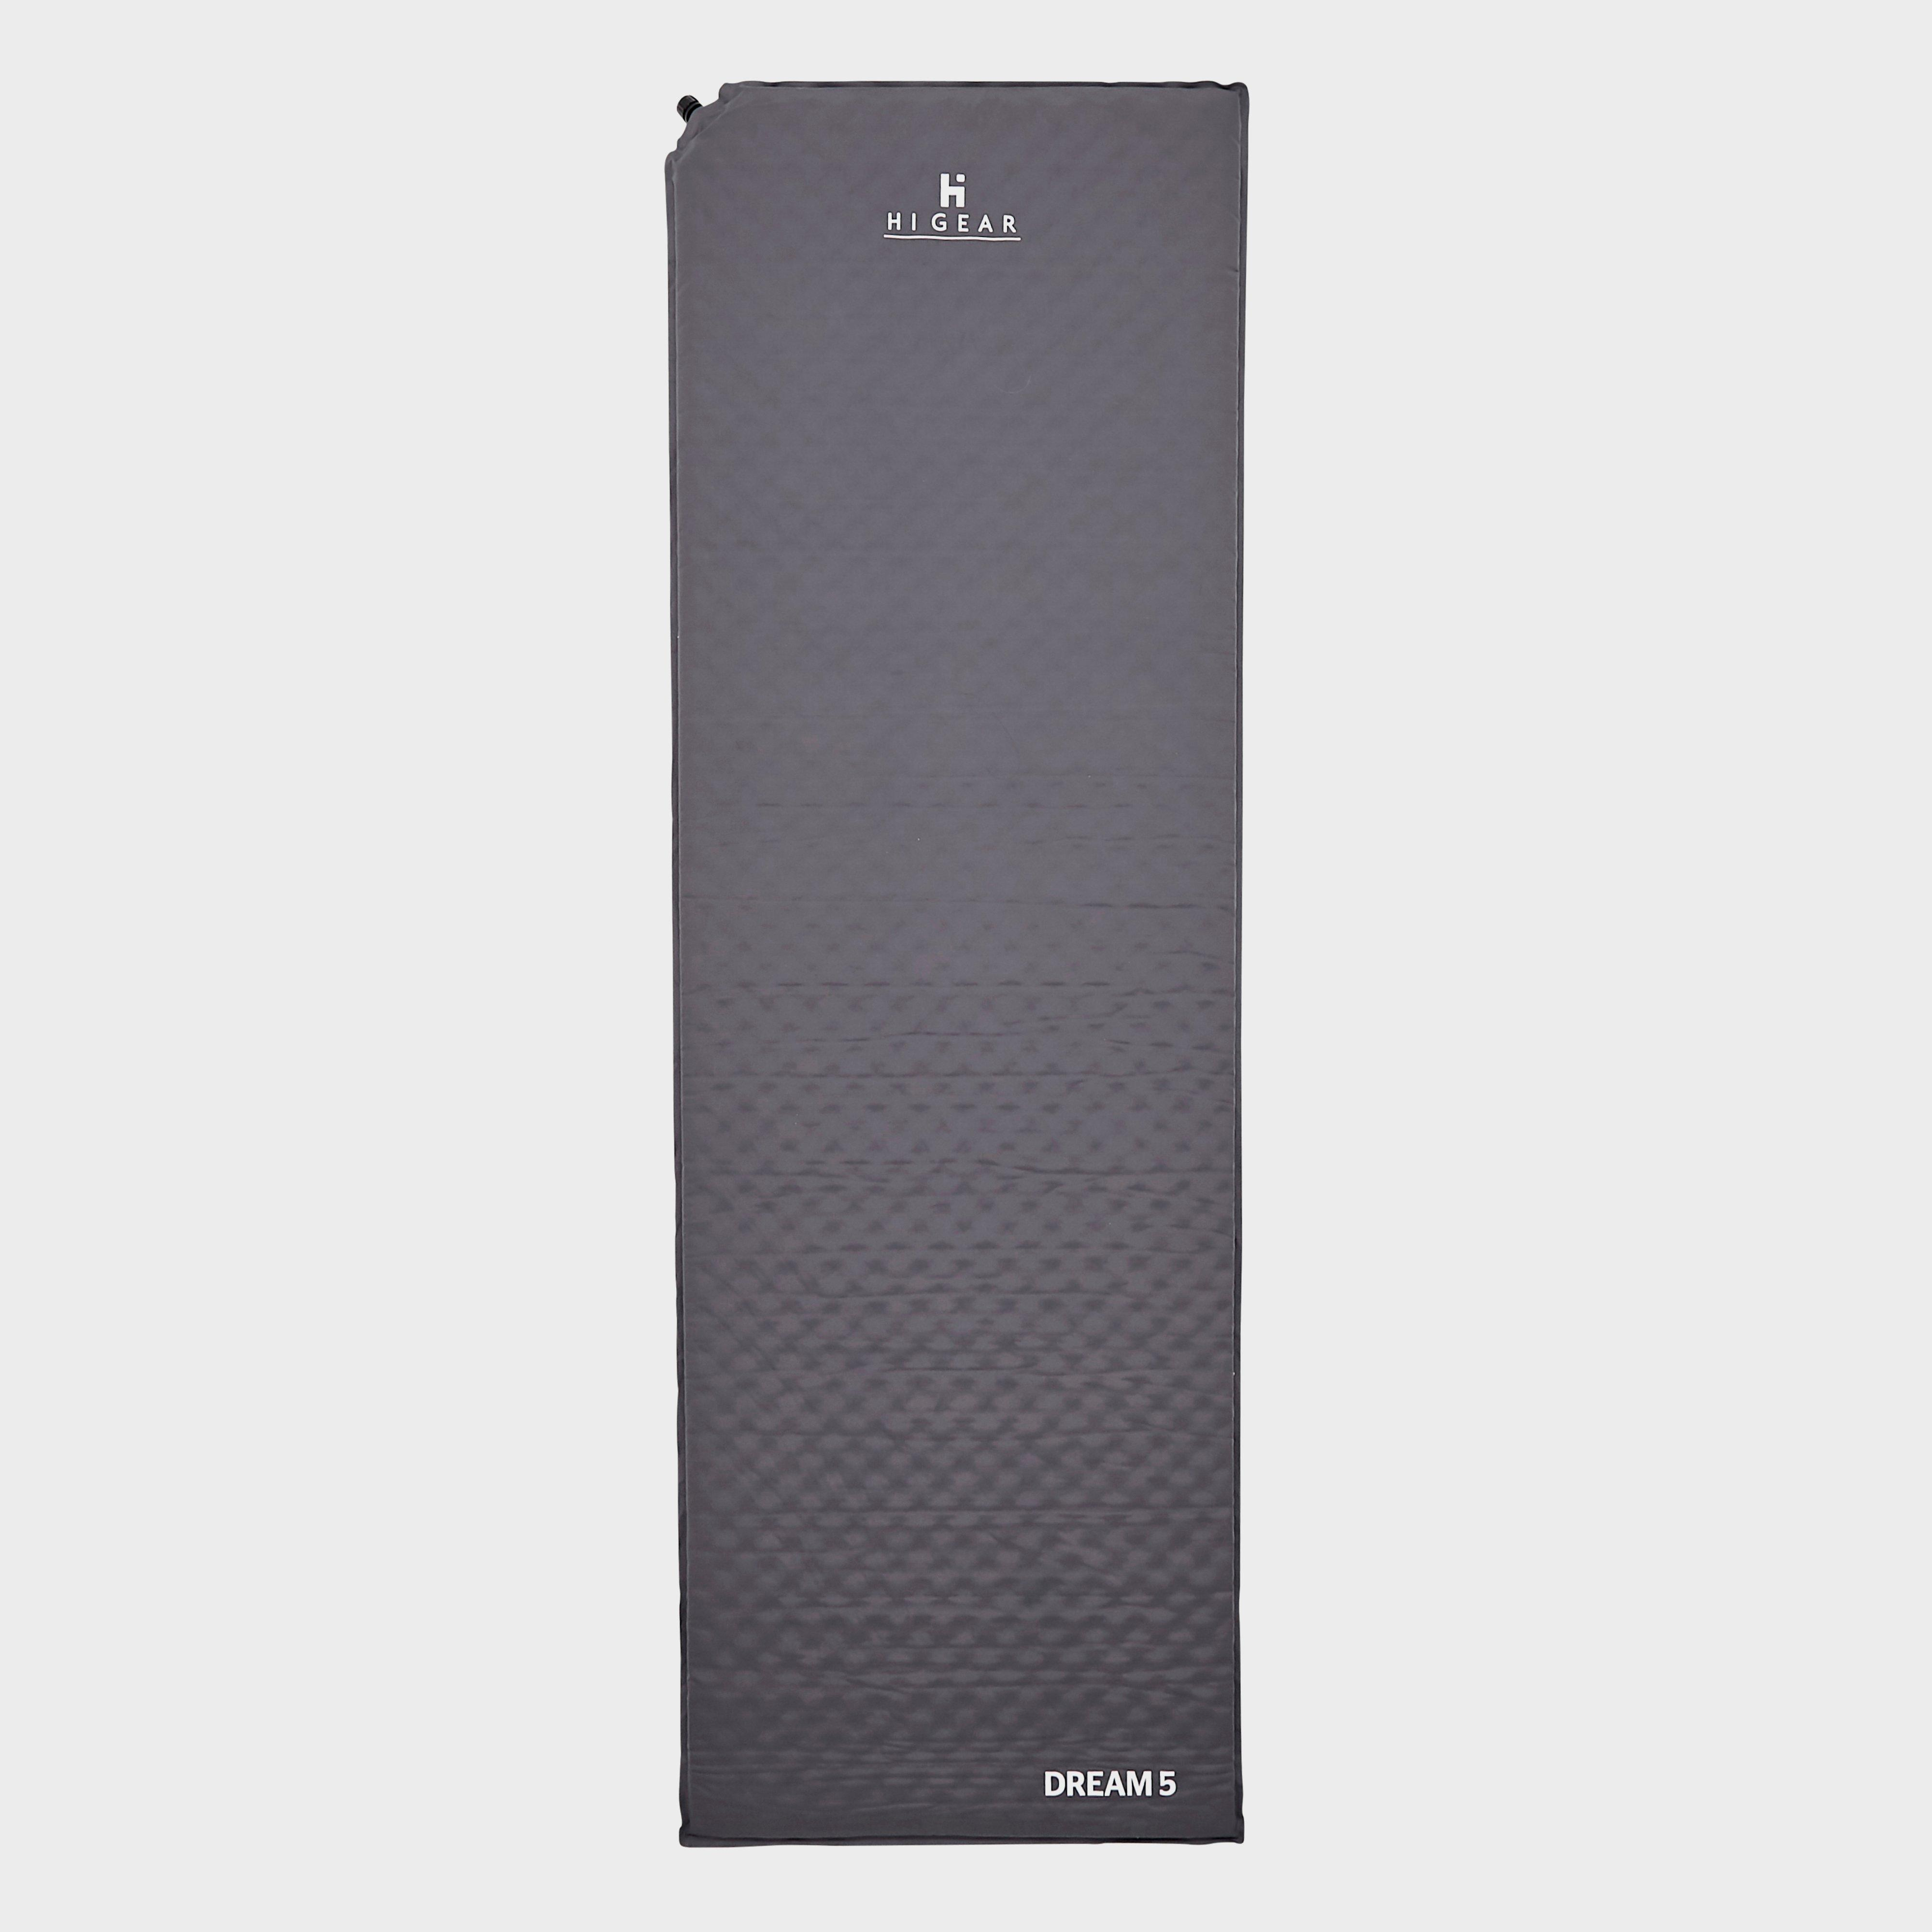 Hi Gear Dream 5 Sleeping Mat